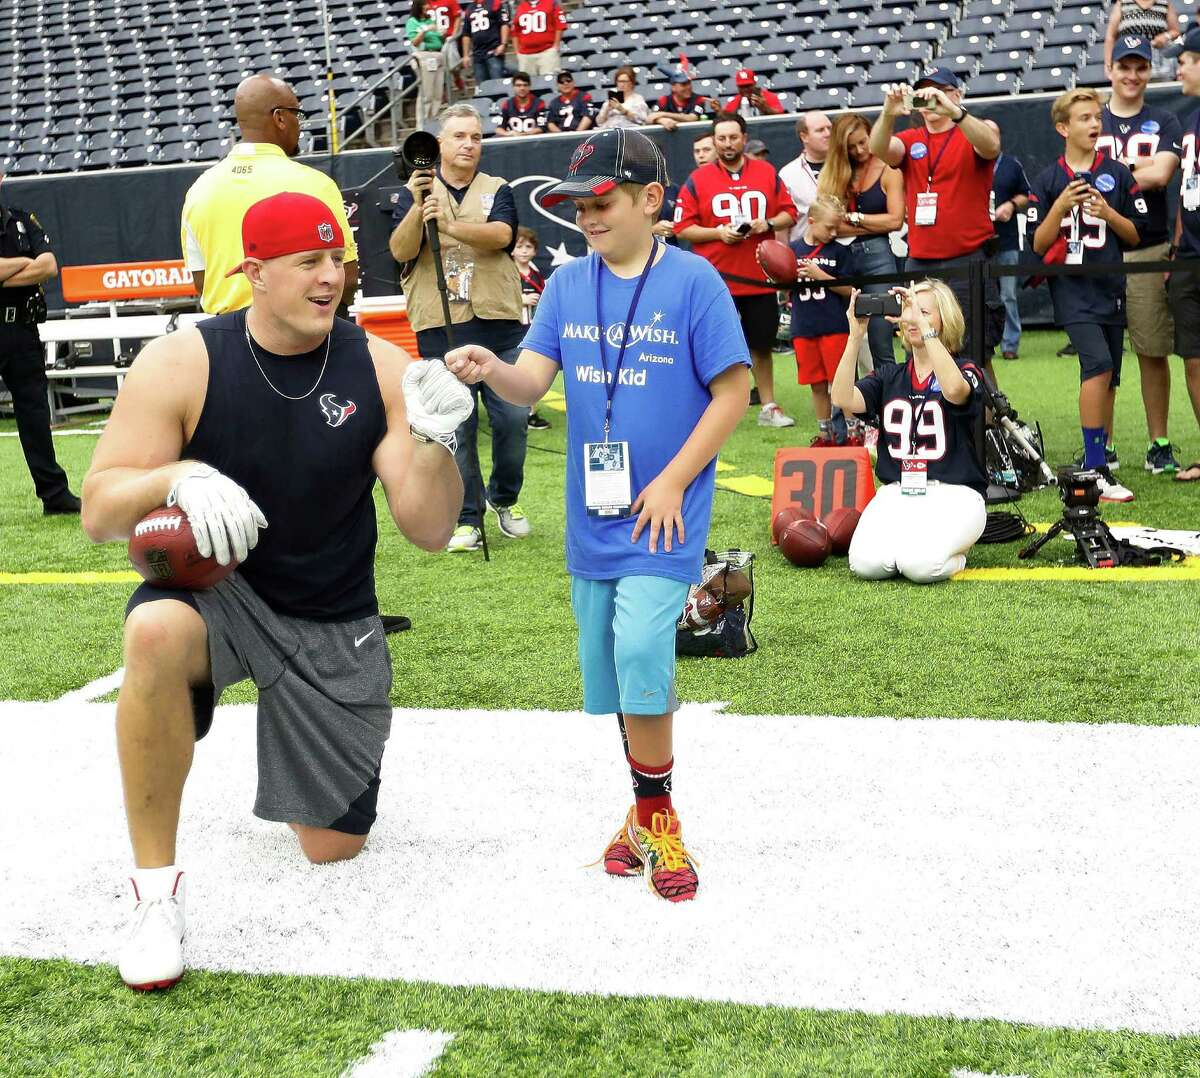 Houston Texans defensive end J.J. Watt chats with Harrison Steiner, 10, of Phoenix, with Make-A-Wish during warmups before the start of an NFL football game at NRG Stadium, Sunday, Sept. 18, 2016 in Houston.